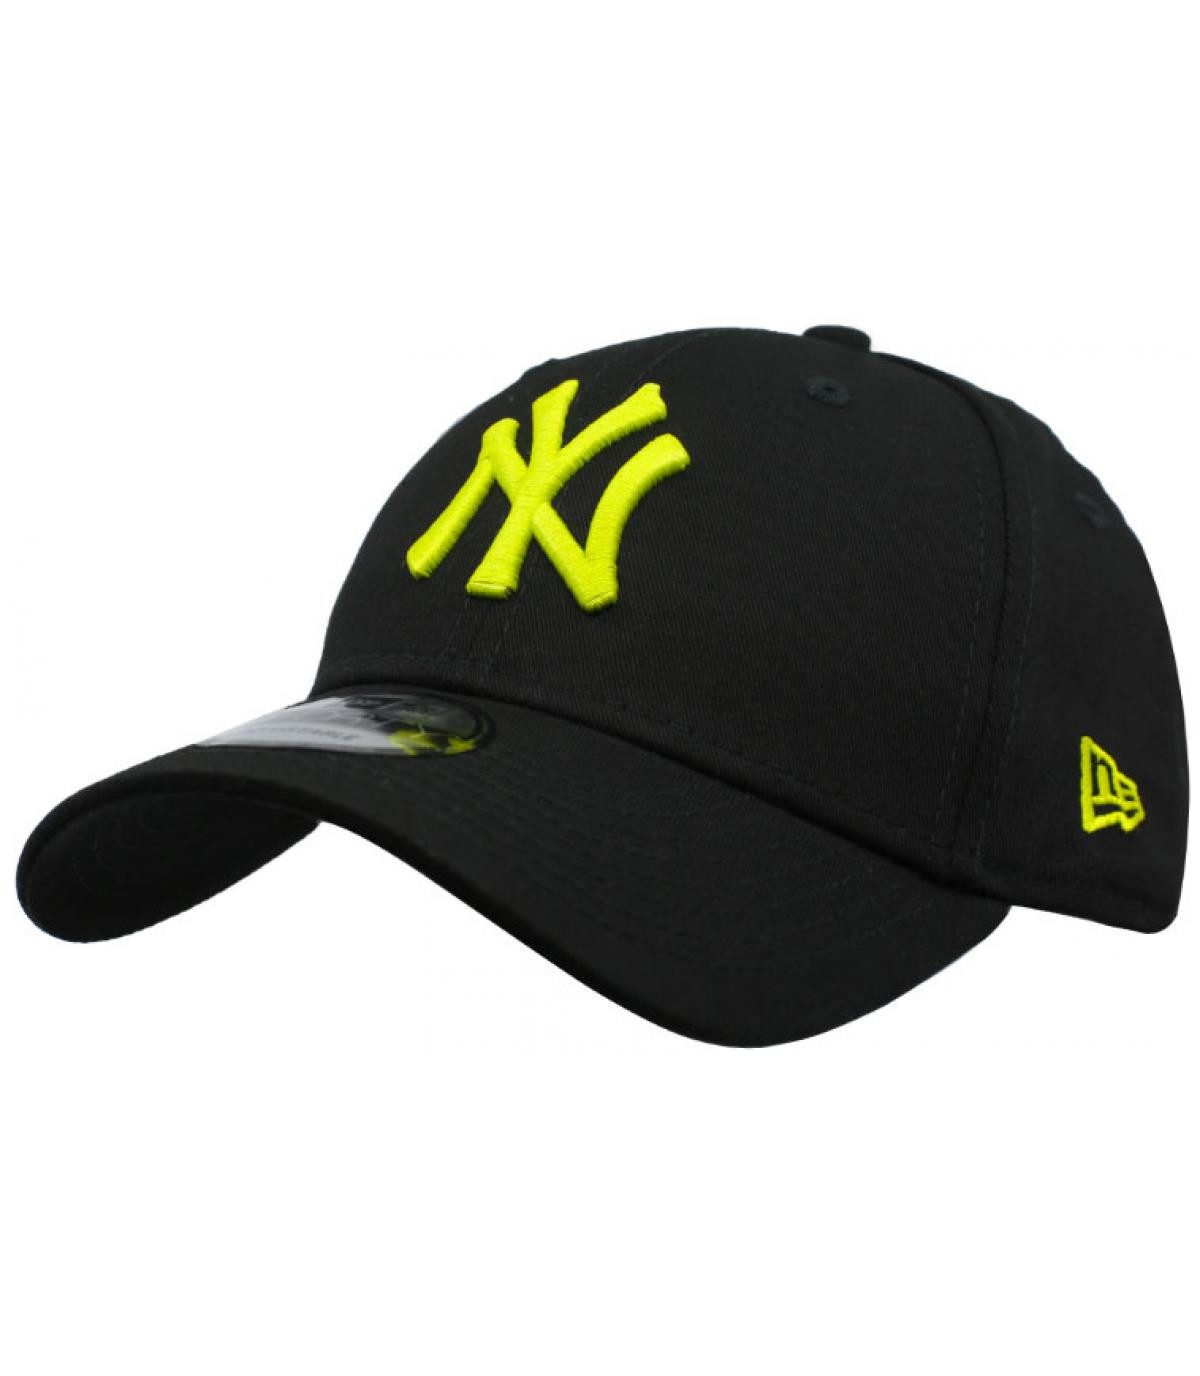 Details Cap League Ess NY 9Forty black cyber green - Abbildung 1